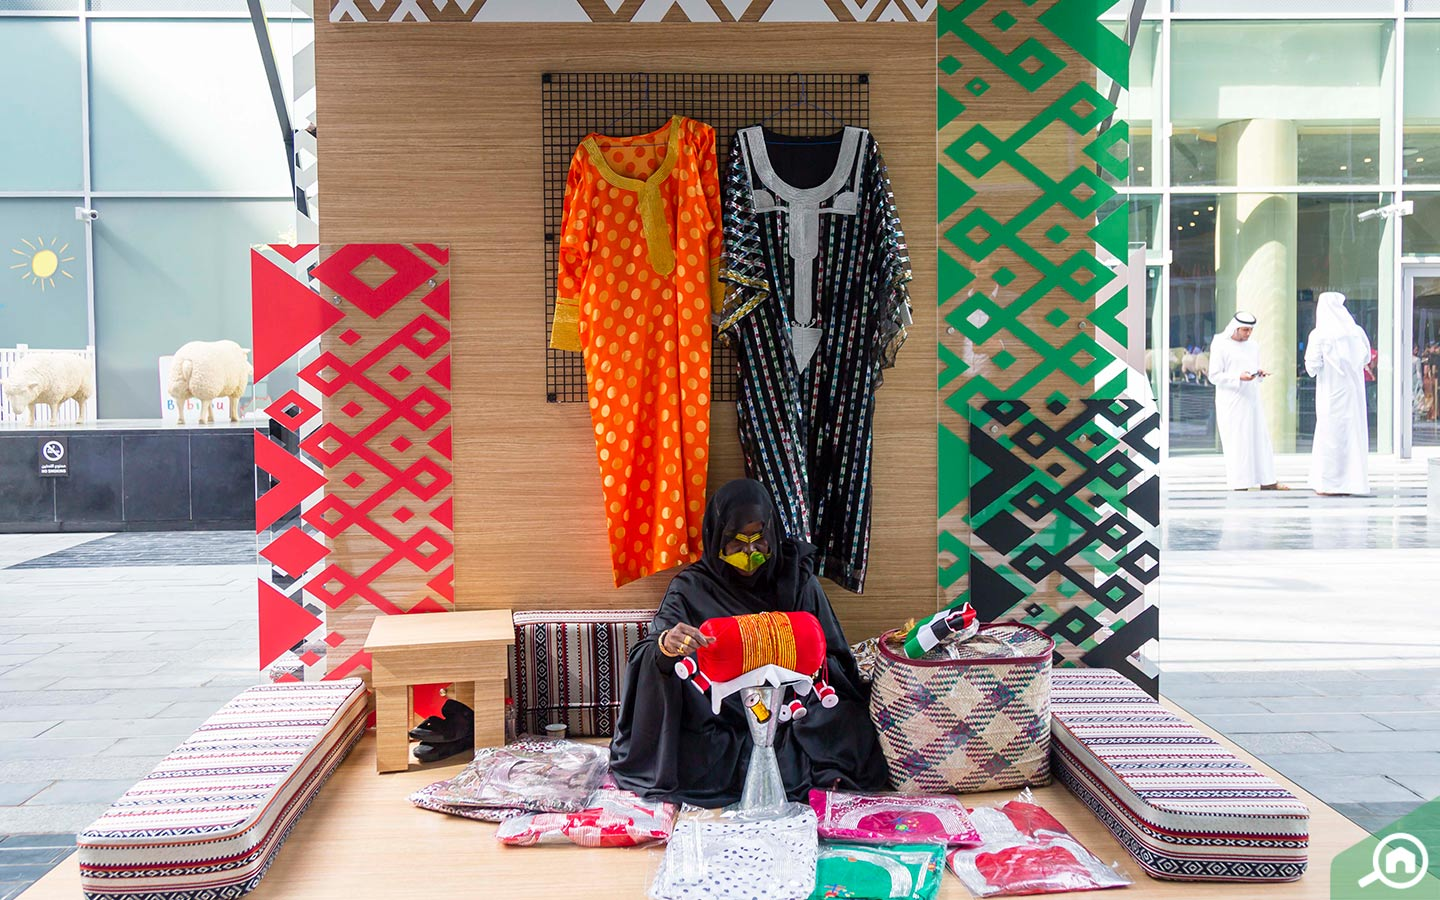 stalls selling traditional Arabic attire